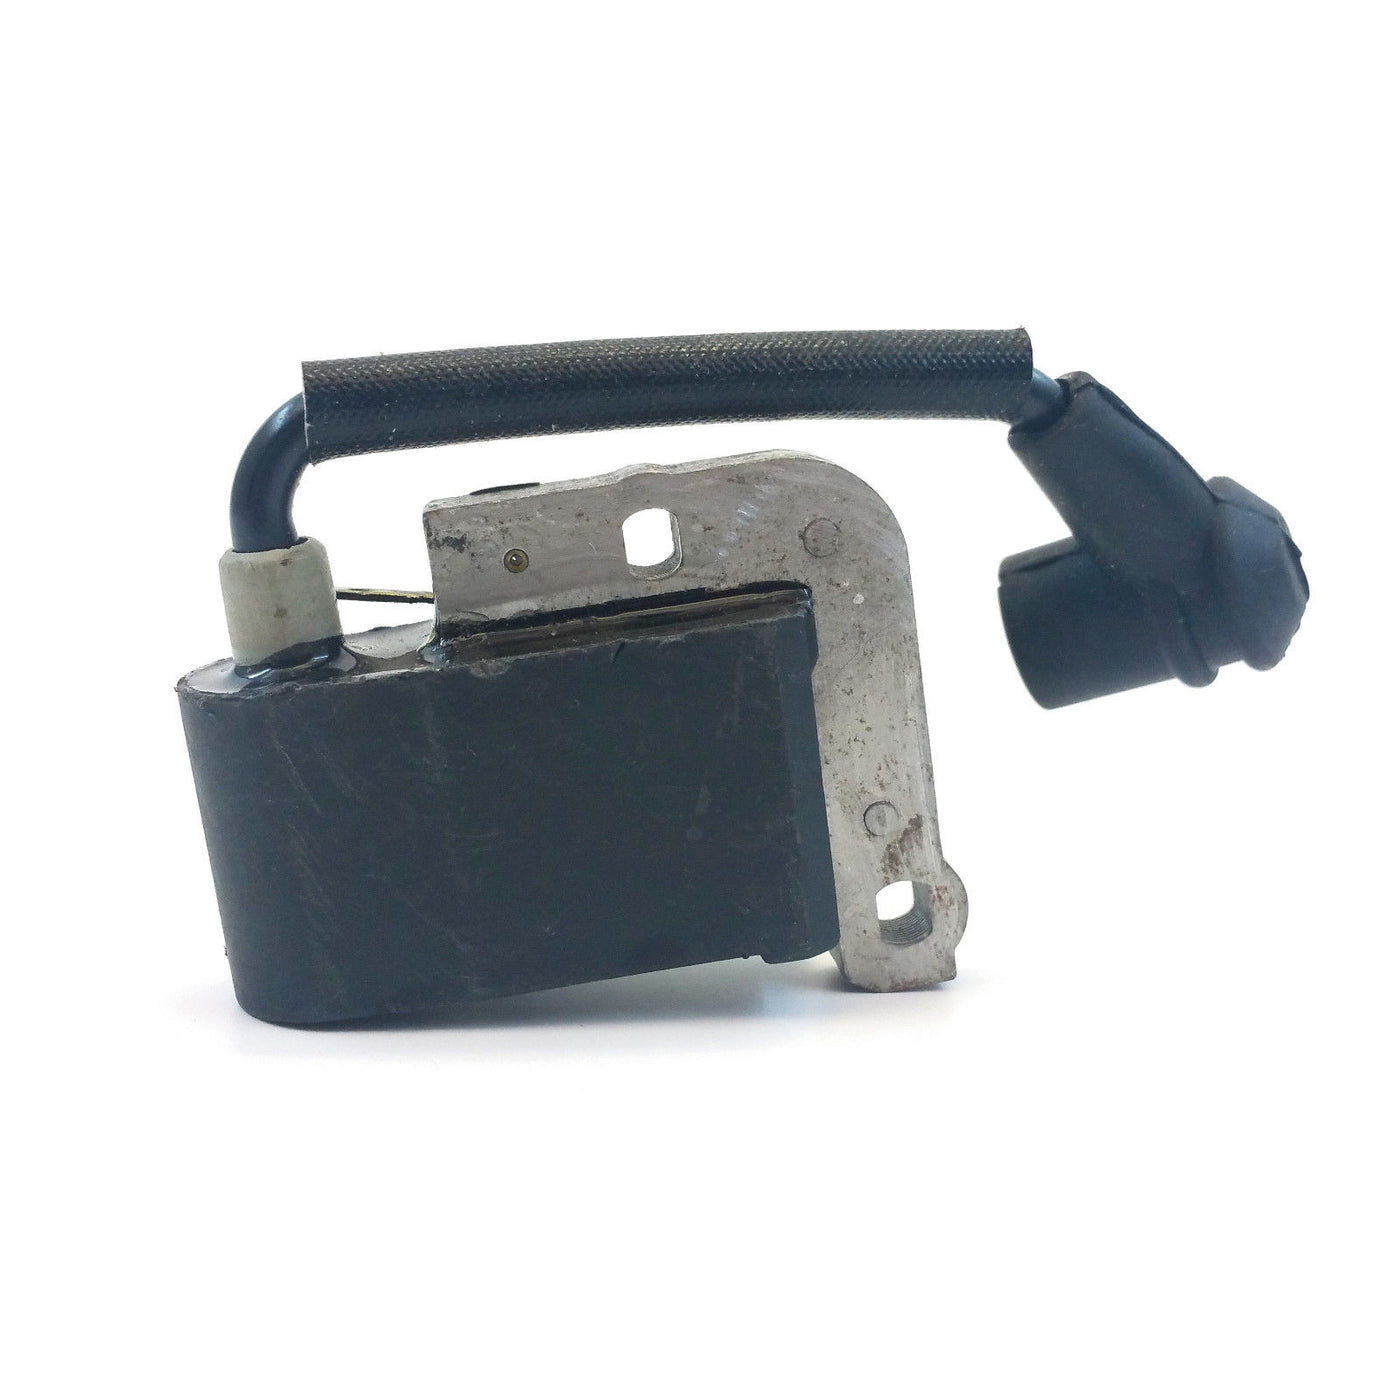 Genuine Ignition Coil for OLEO-MAC 947, 952, GS520 - EFCO MT5200 #2501001R